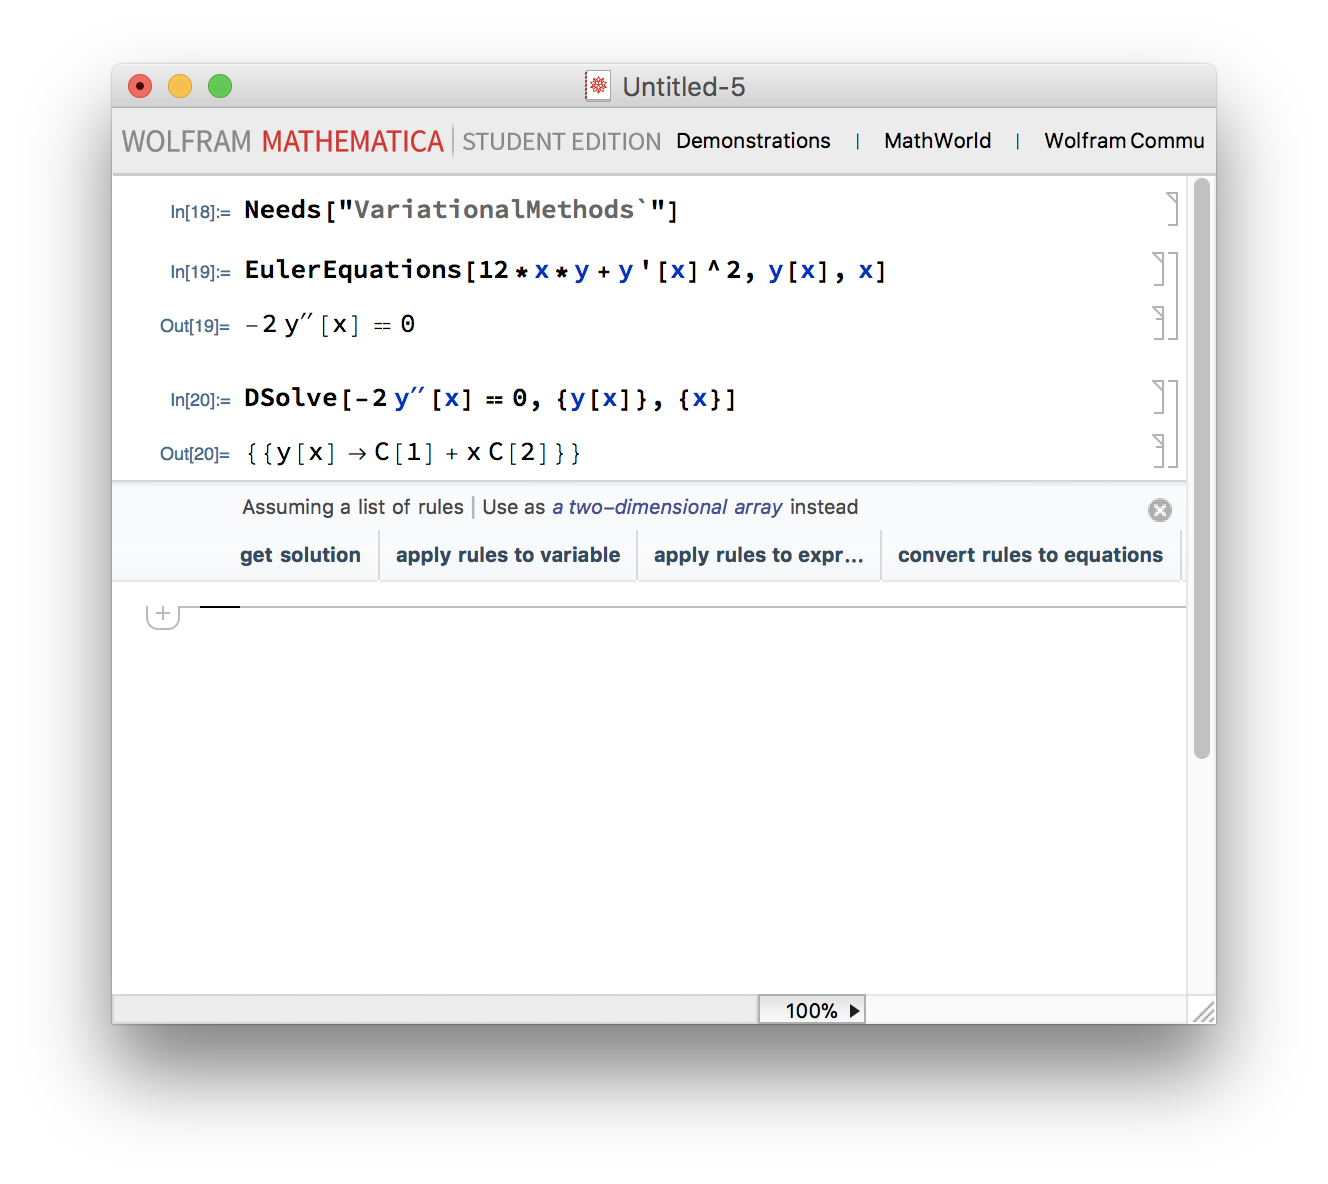 Mathematica's calculations